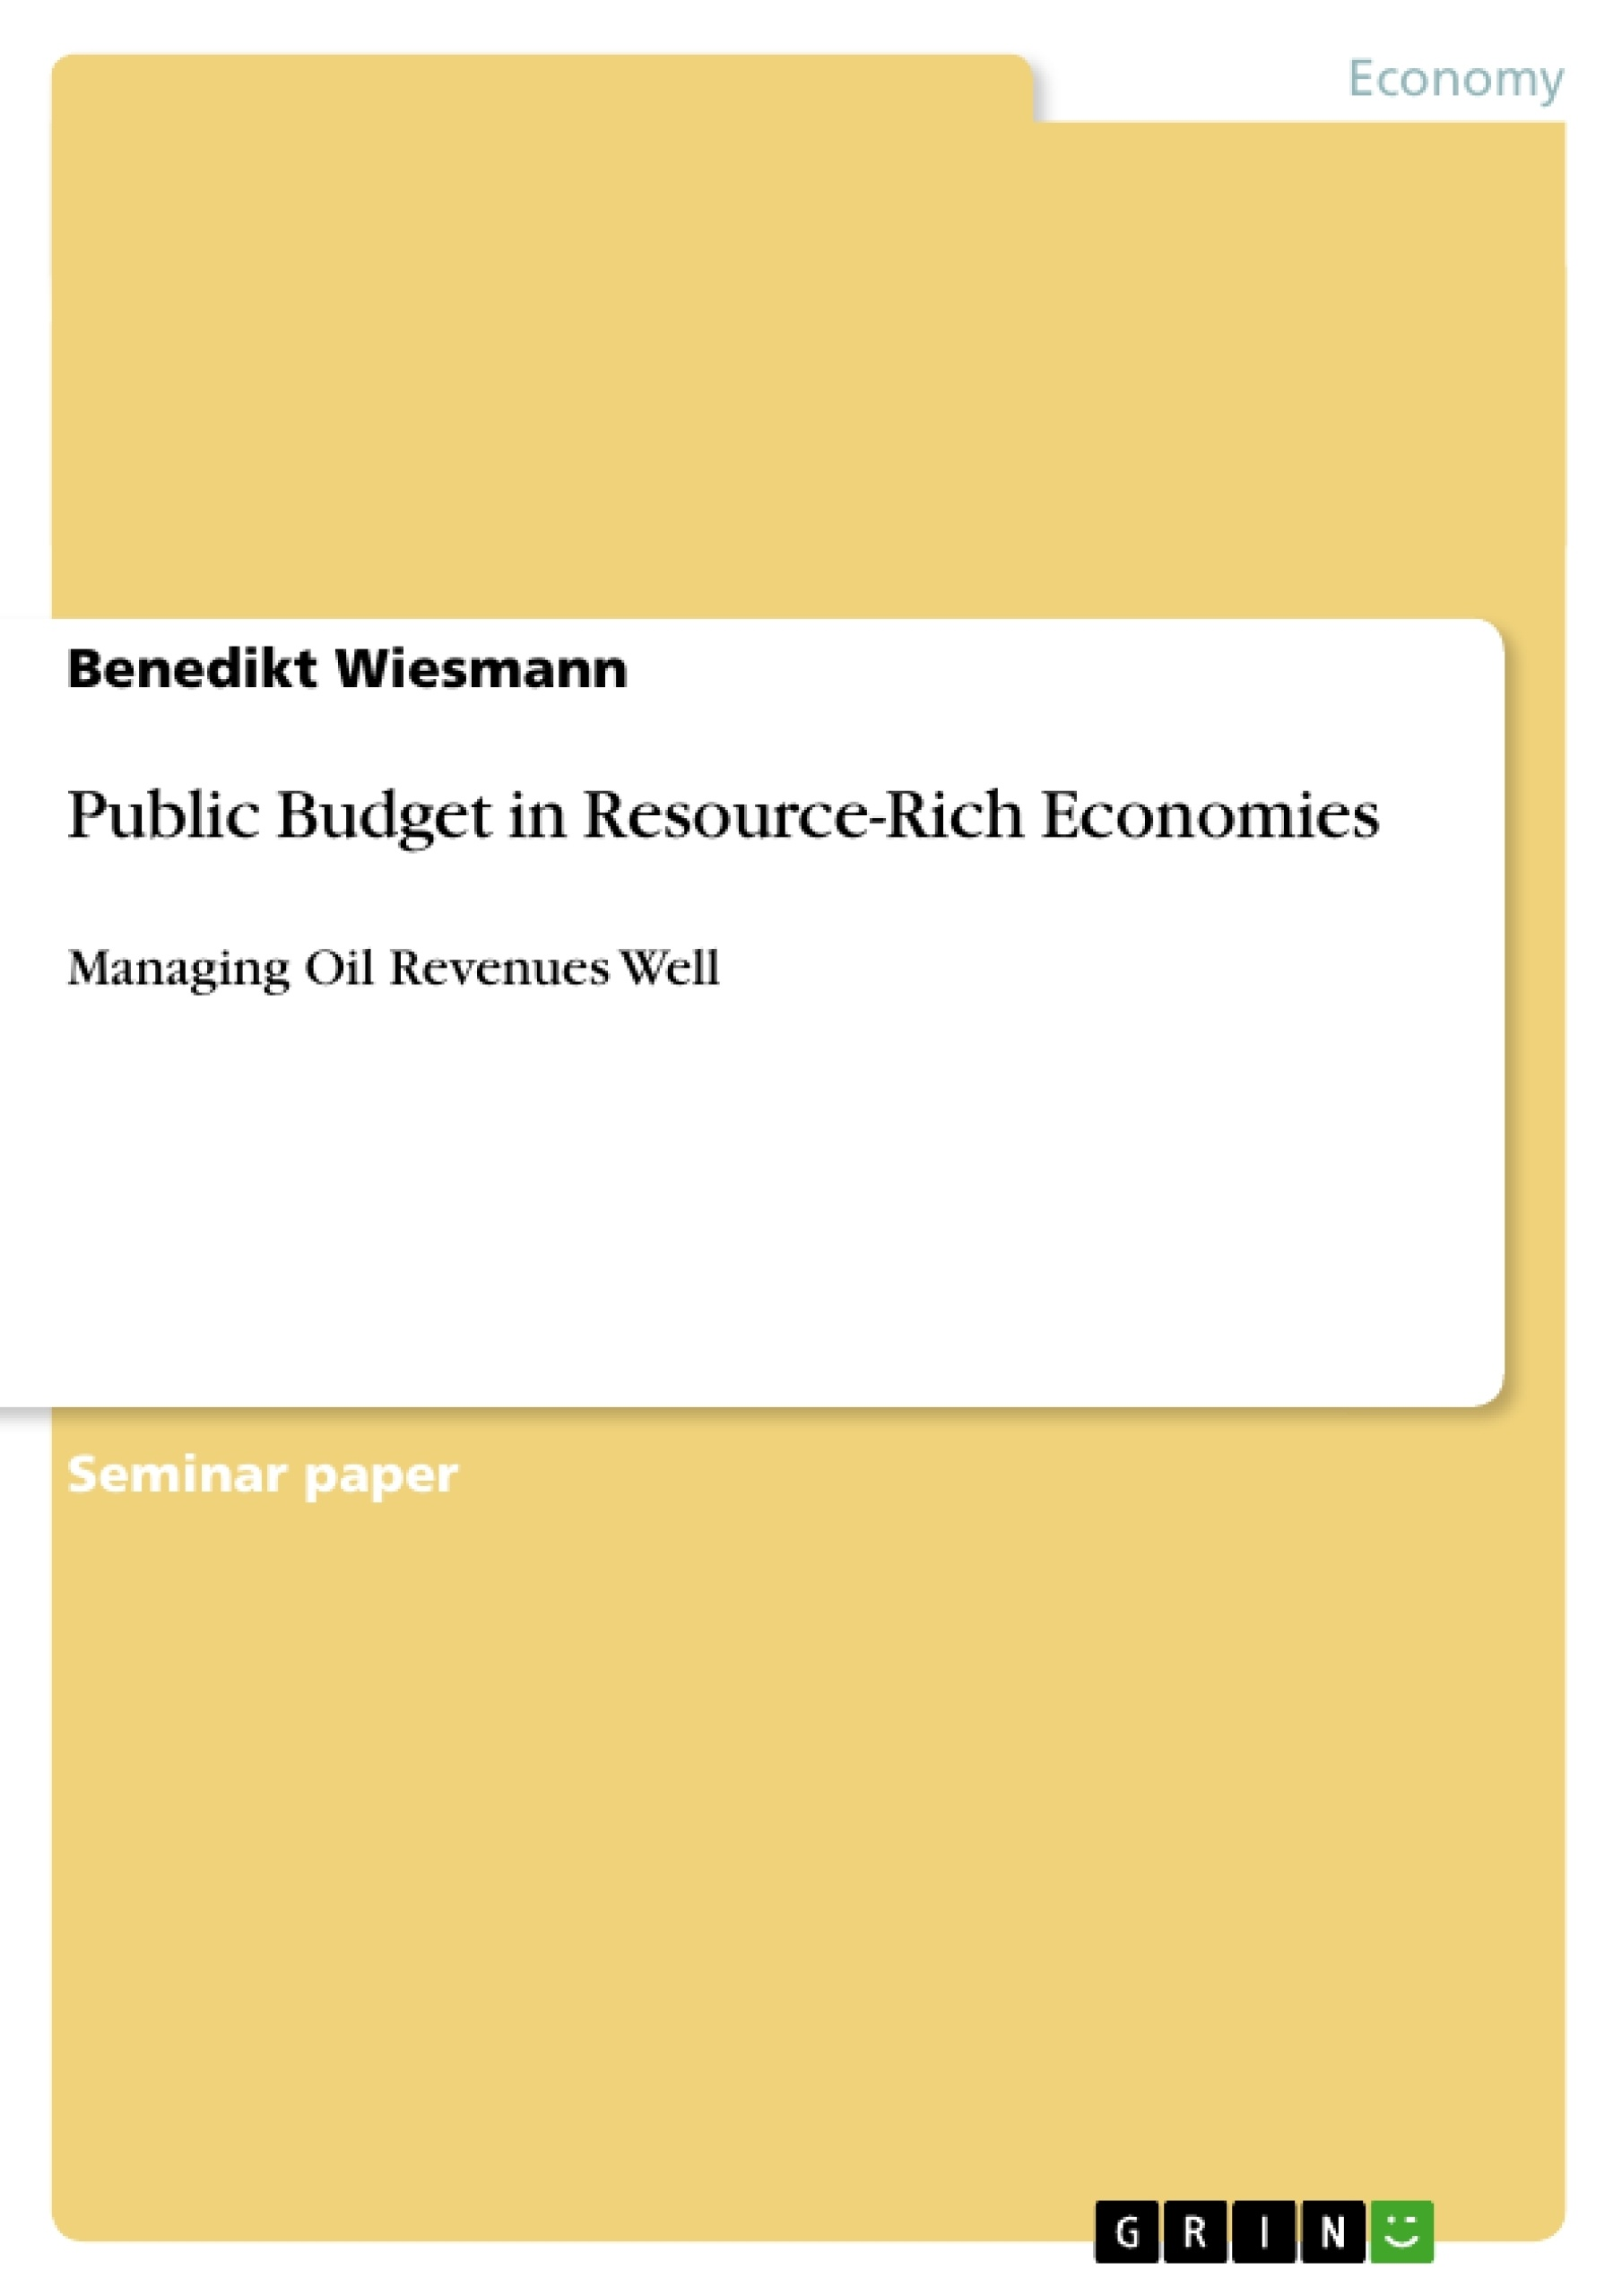 Title: Public Budget in Resource-Rich Economies